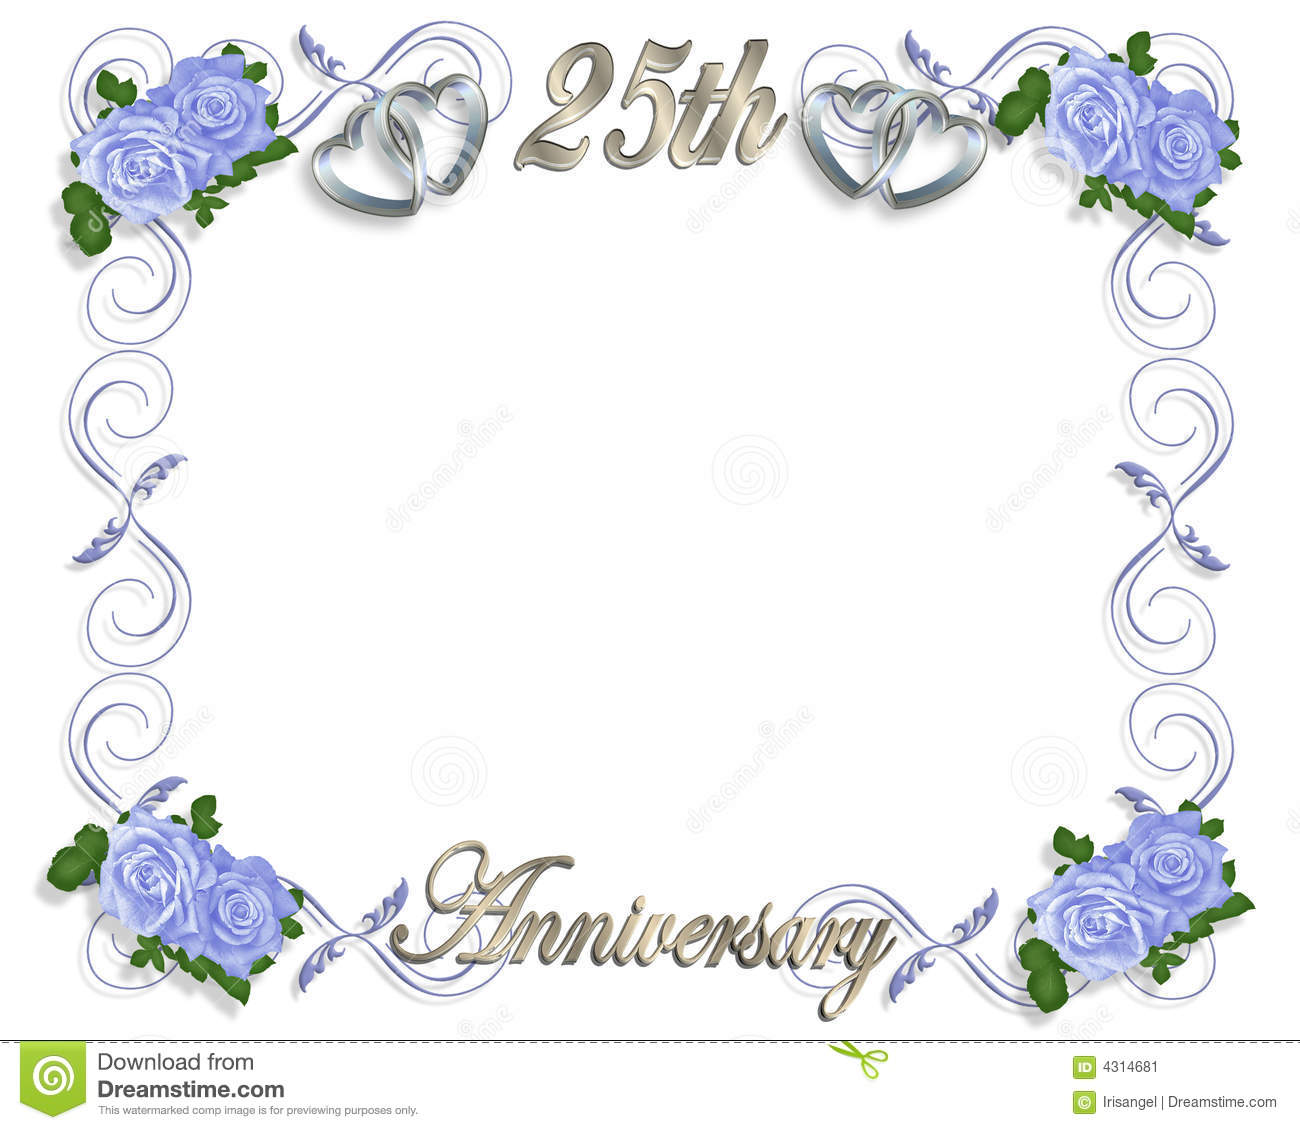 25th Anniversary Template stock illustration. Illustration of ...